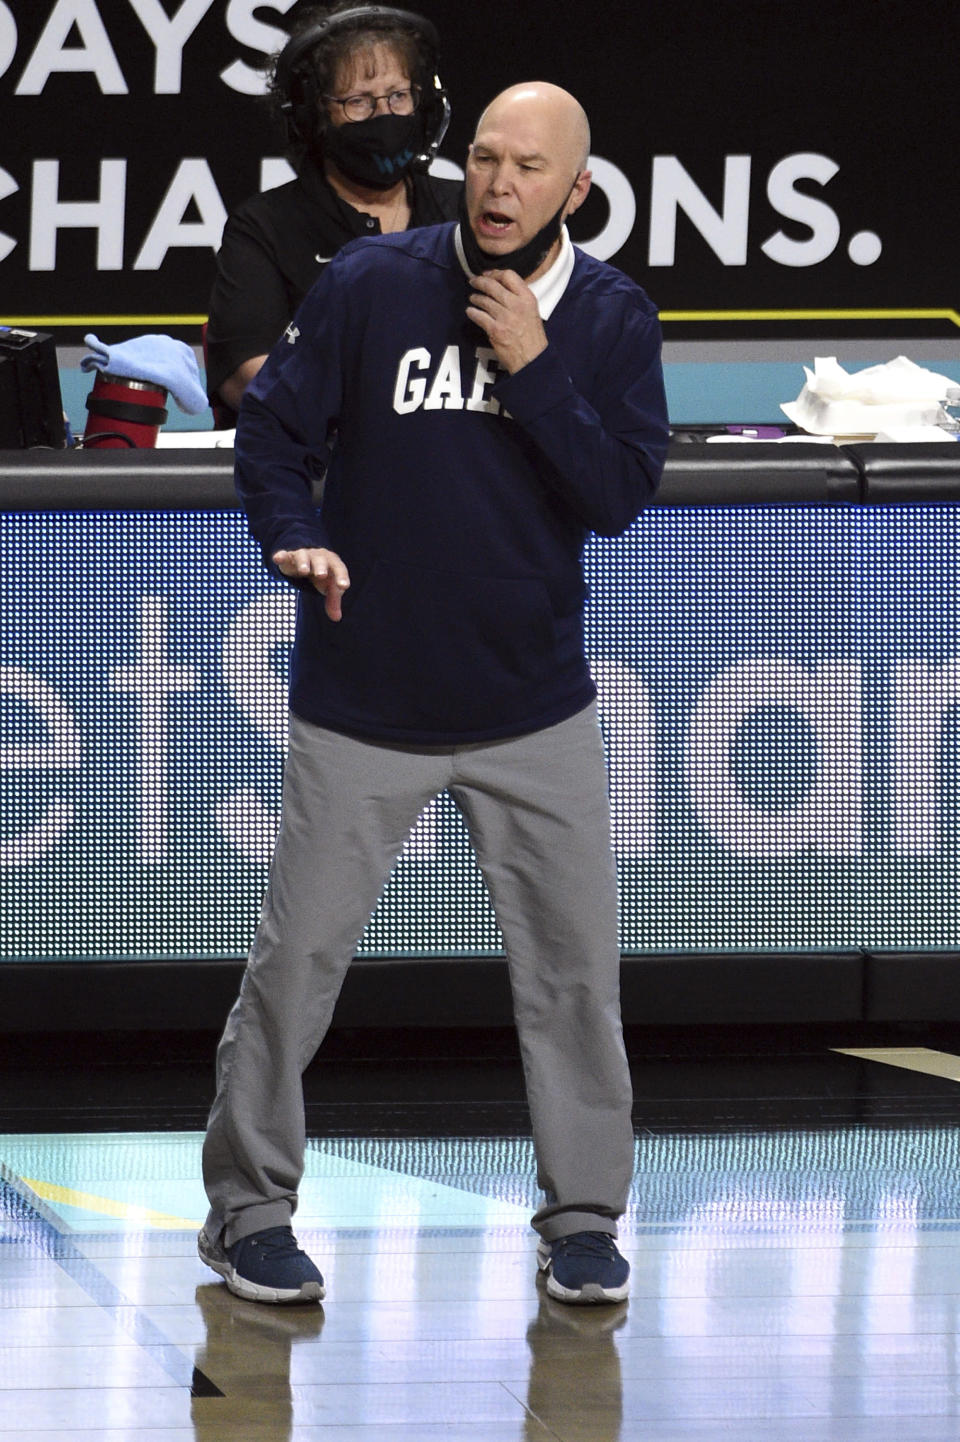 Saint Mary's head coach Randy Bennett calls to his team during the first half of an NCAA semifinal college basketball game against Gonzaga at the West Coast Conference tournament Monday, March 8, 2021, in Las Vegas. (AP Photo/David Becker)